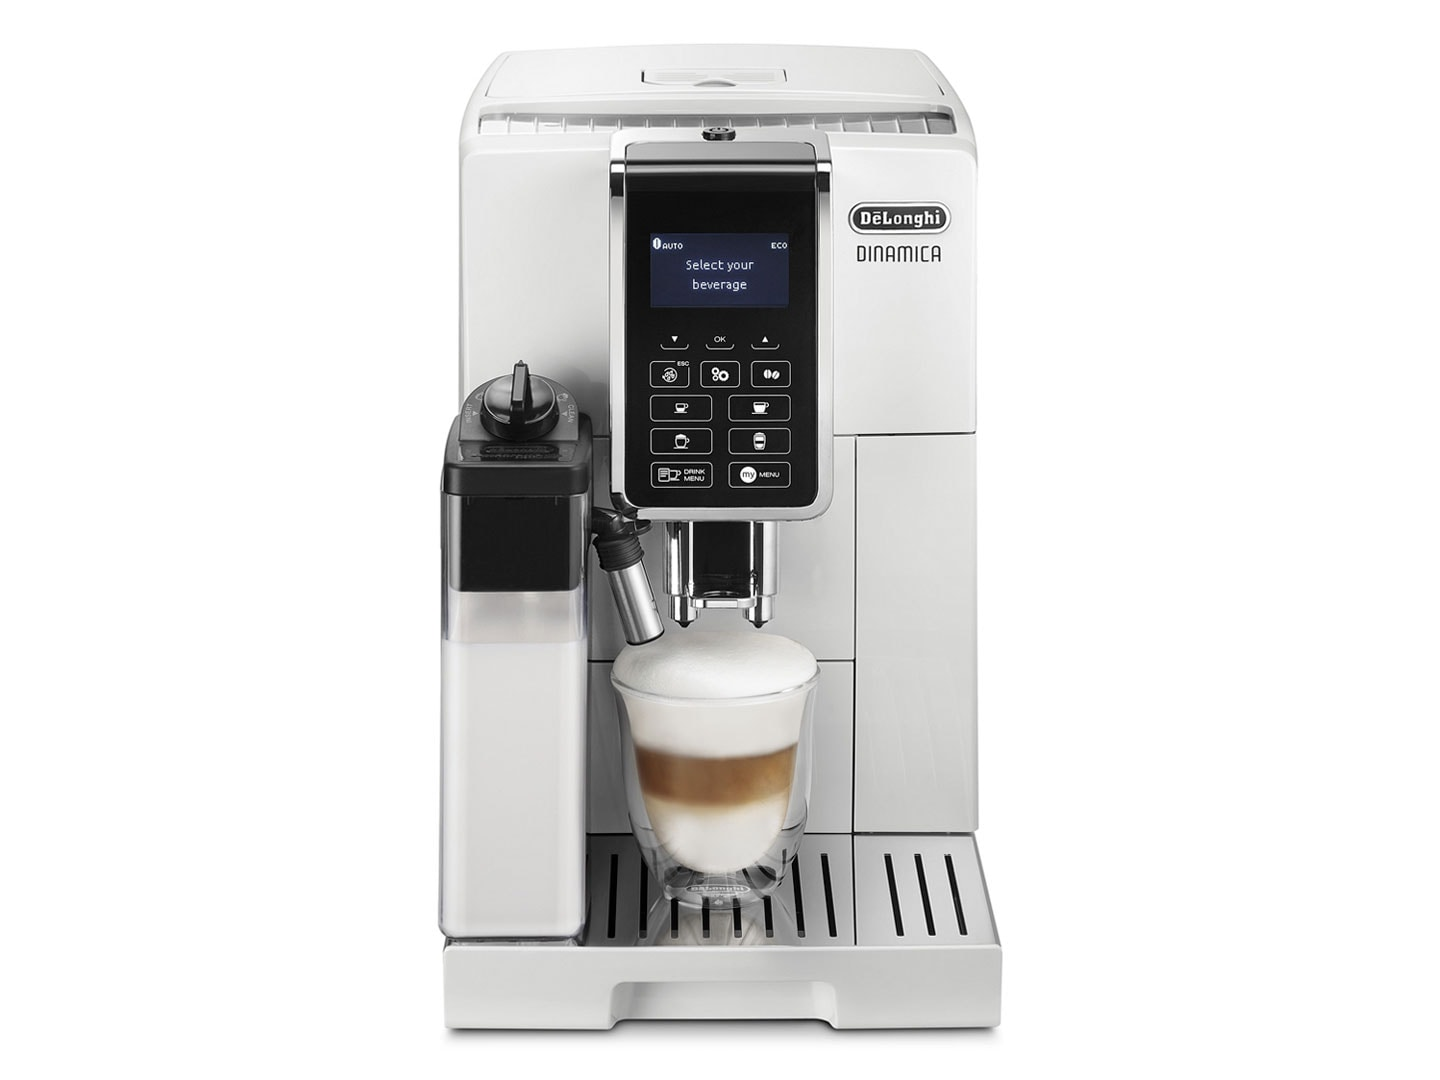 Dinamica delonghi ECAM35055W espresso machine makes cappuccino